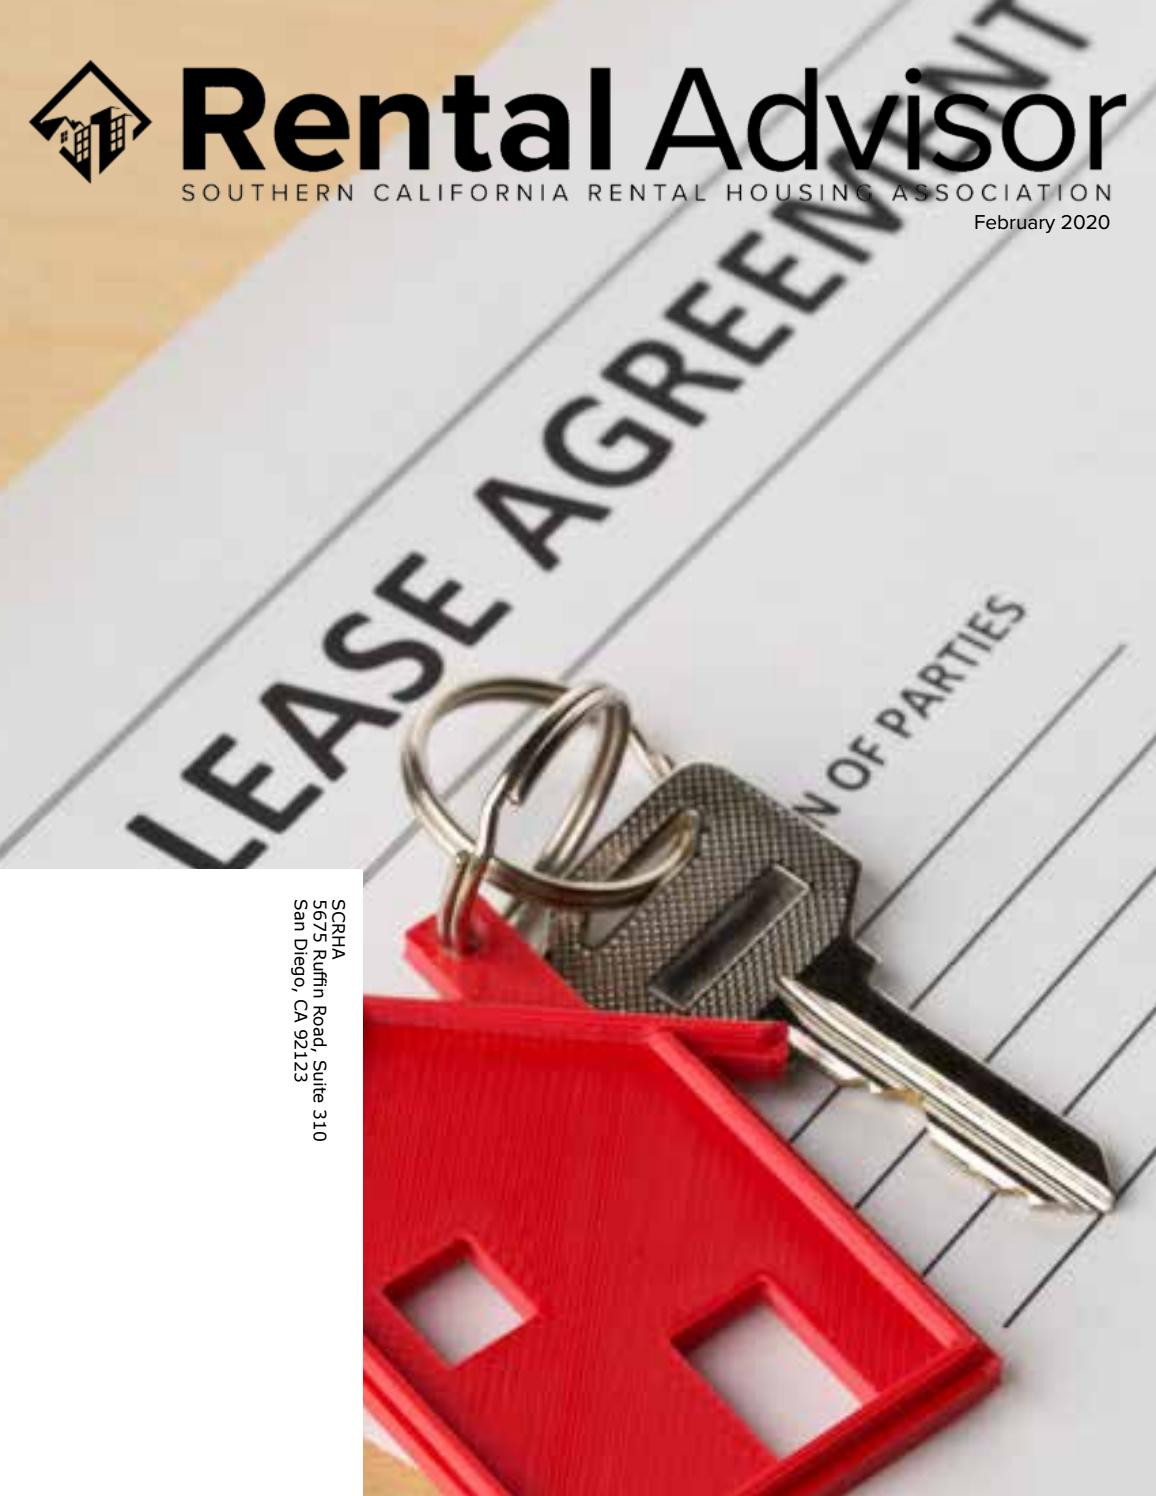 Lilley Tile And Stone Llp southern california rental housing association rental